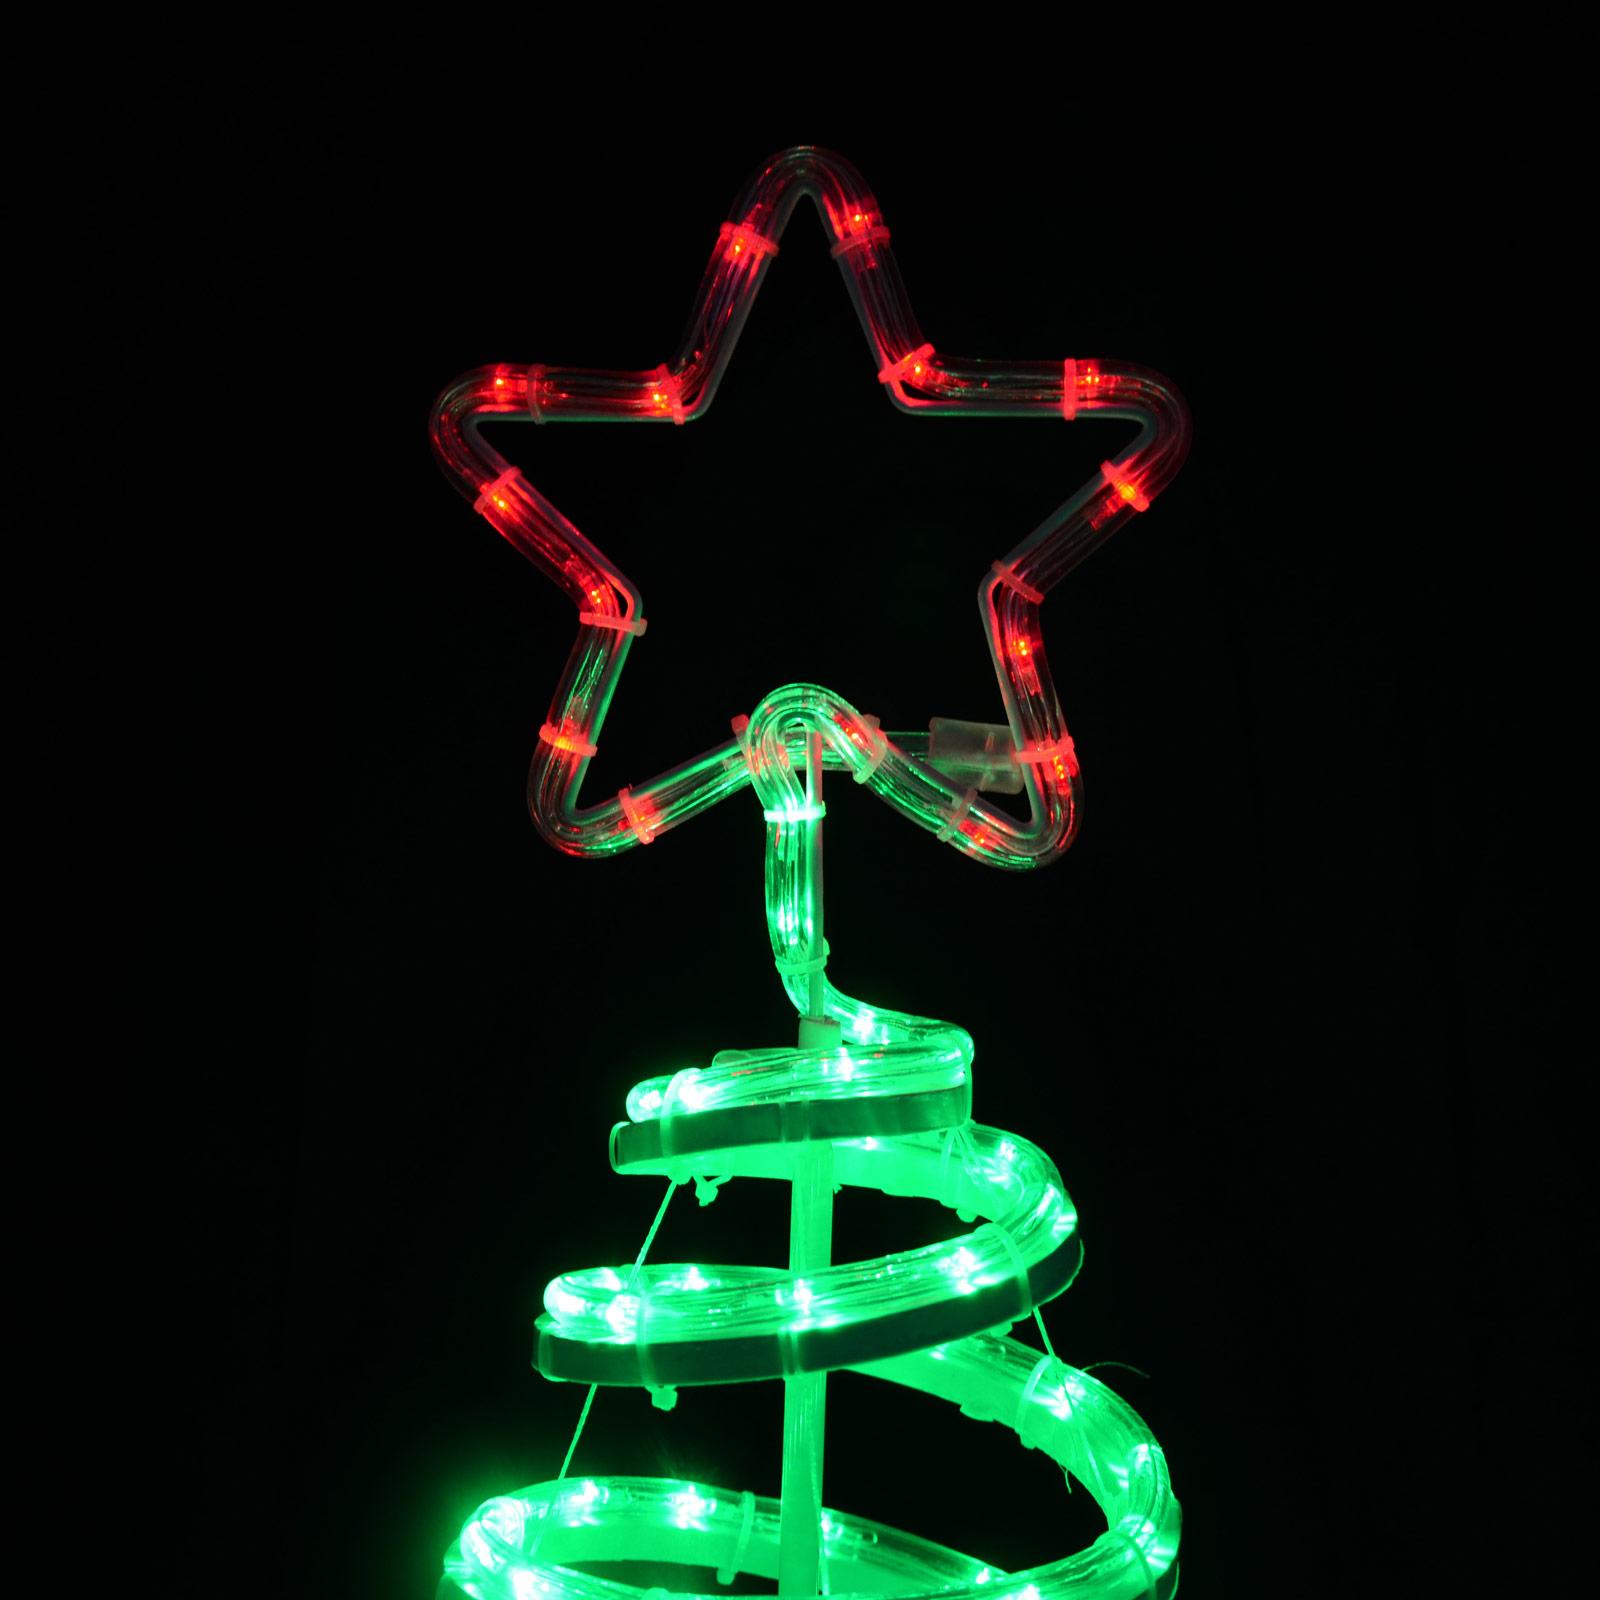 Christmas rope light up decoration spiral tree star 120cm for Outdoor light up ornaments